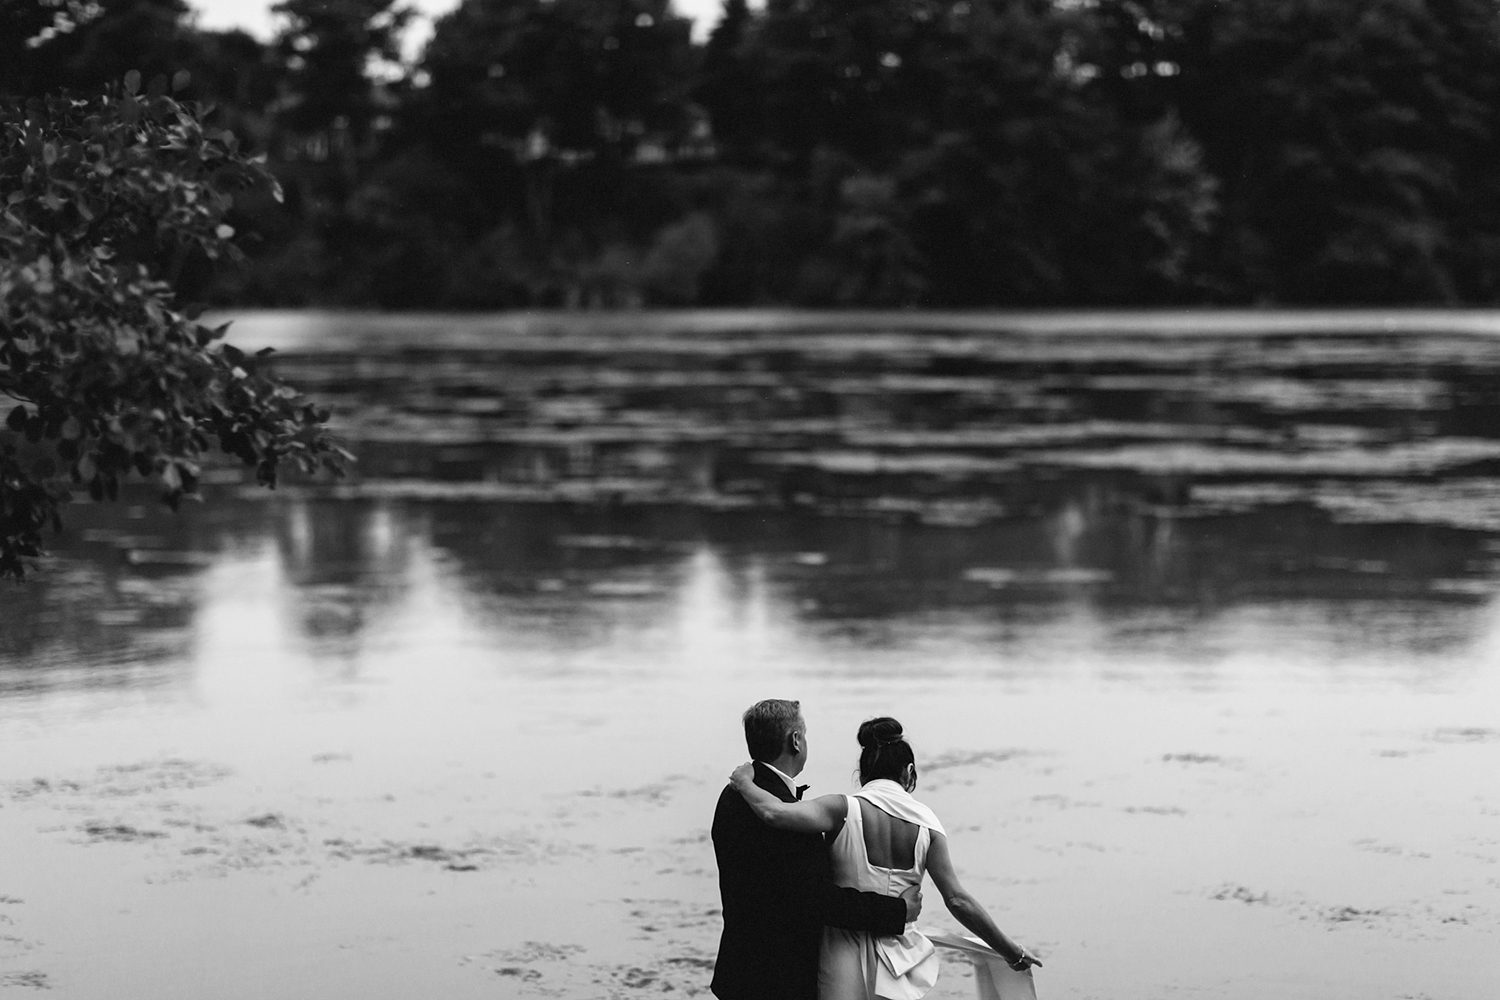 Best-Wedding-Photographers-in-Niagara-on-the-Lake-Toronto-Port-Dalhousie-curling-club-venue-inspiration-photojournalistic-documentary-style-candid-real-couples-portraits-walking-in-wilderness-cottage-on-a-dock-intimate-moment.jpg